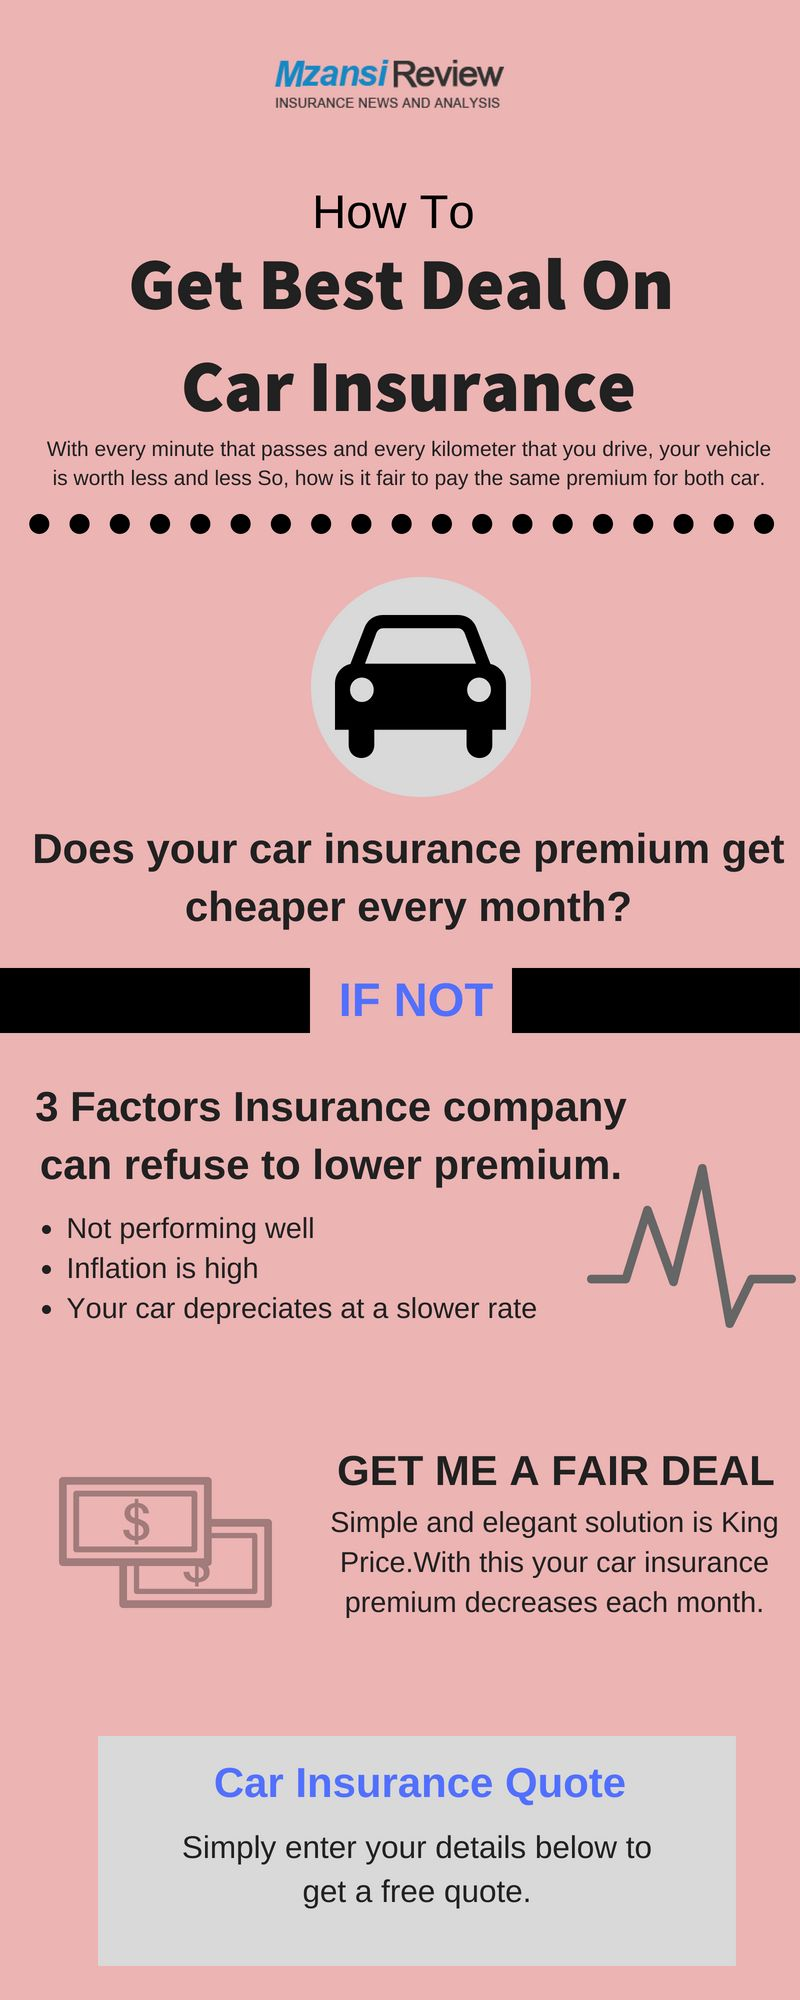 How To Get The Best Deal On Car Insurance Forever